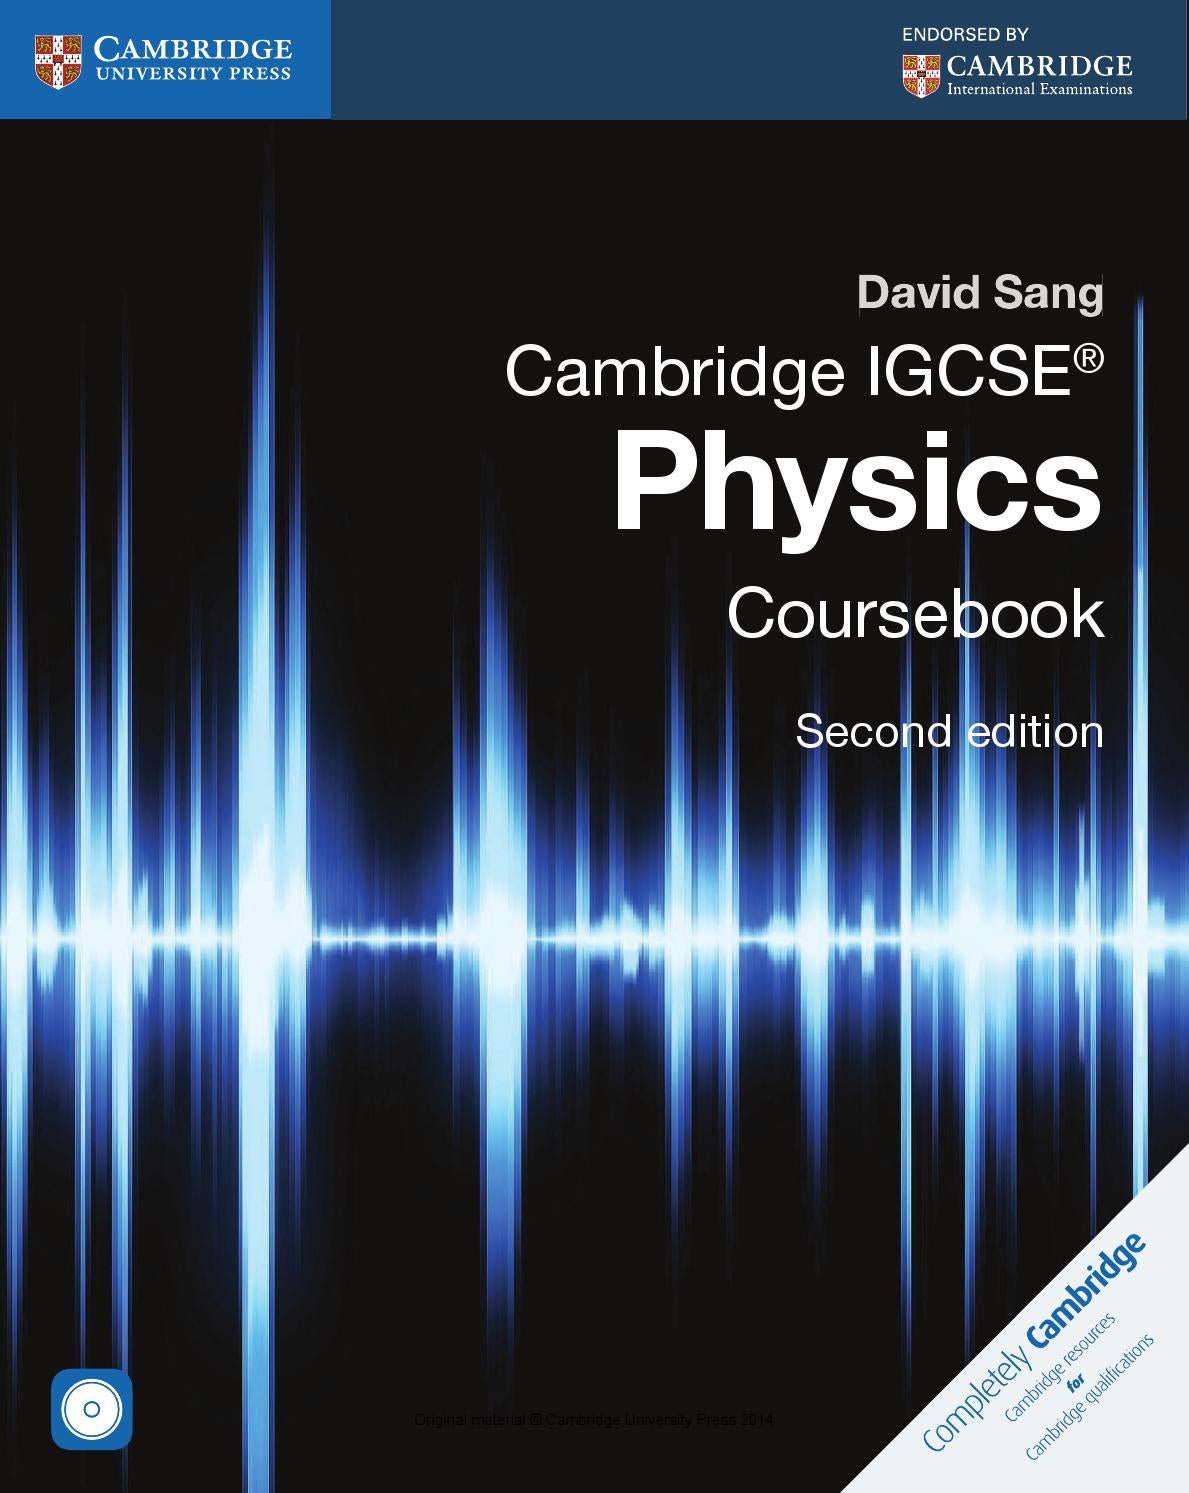 Cambridge Igcse Physics Coursebook Second Edition By Lessons Electric Circuits Volumeexperiments Chapter Wiring Circuit University Press Education Issuu